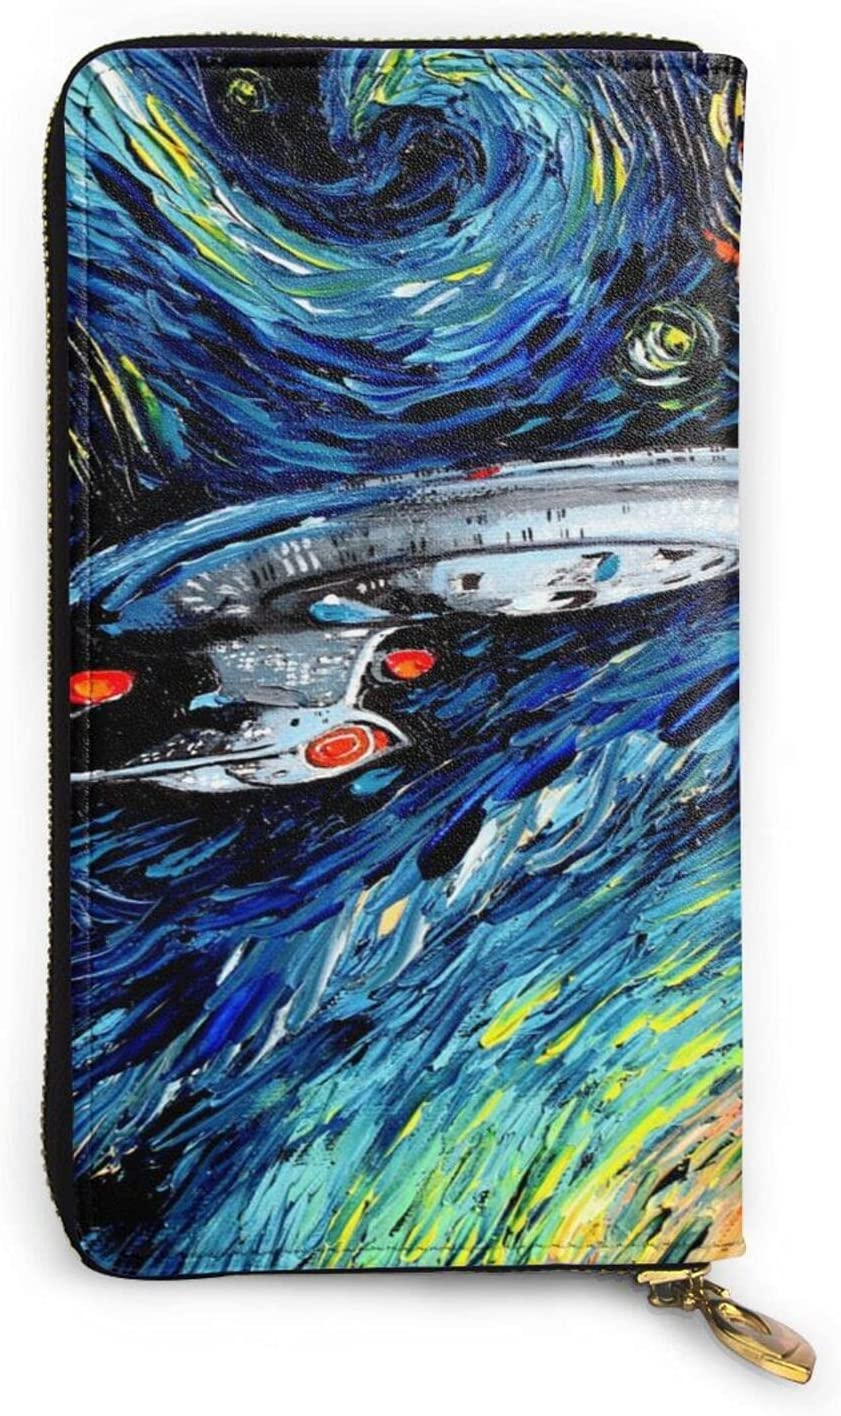 Star Trek Oil Painting Space Womens Real Leather Wallets fashion Purse Clutch Handbags Credit Waterproof